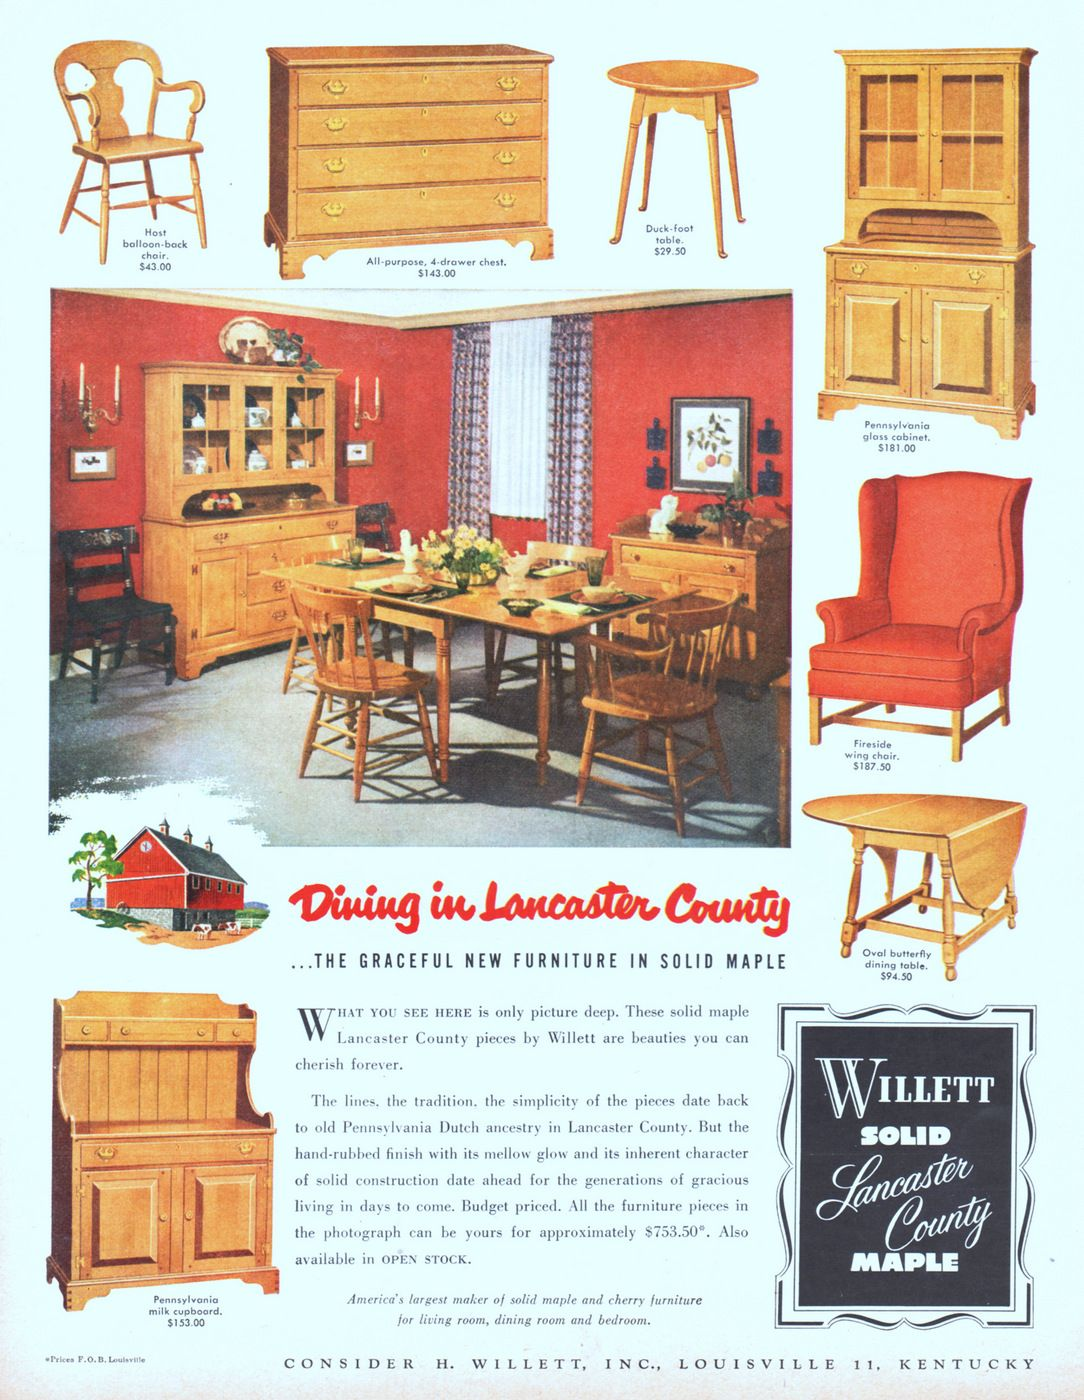 Pin By Susan Salmons On Willett Maple Furniture | Pinterest | Furniture,  Maple Furniture And Lancaster County